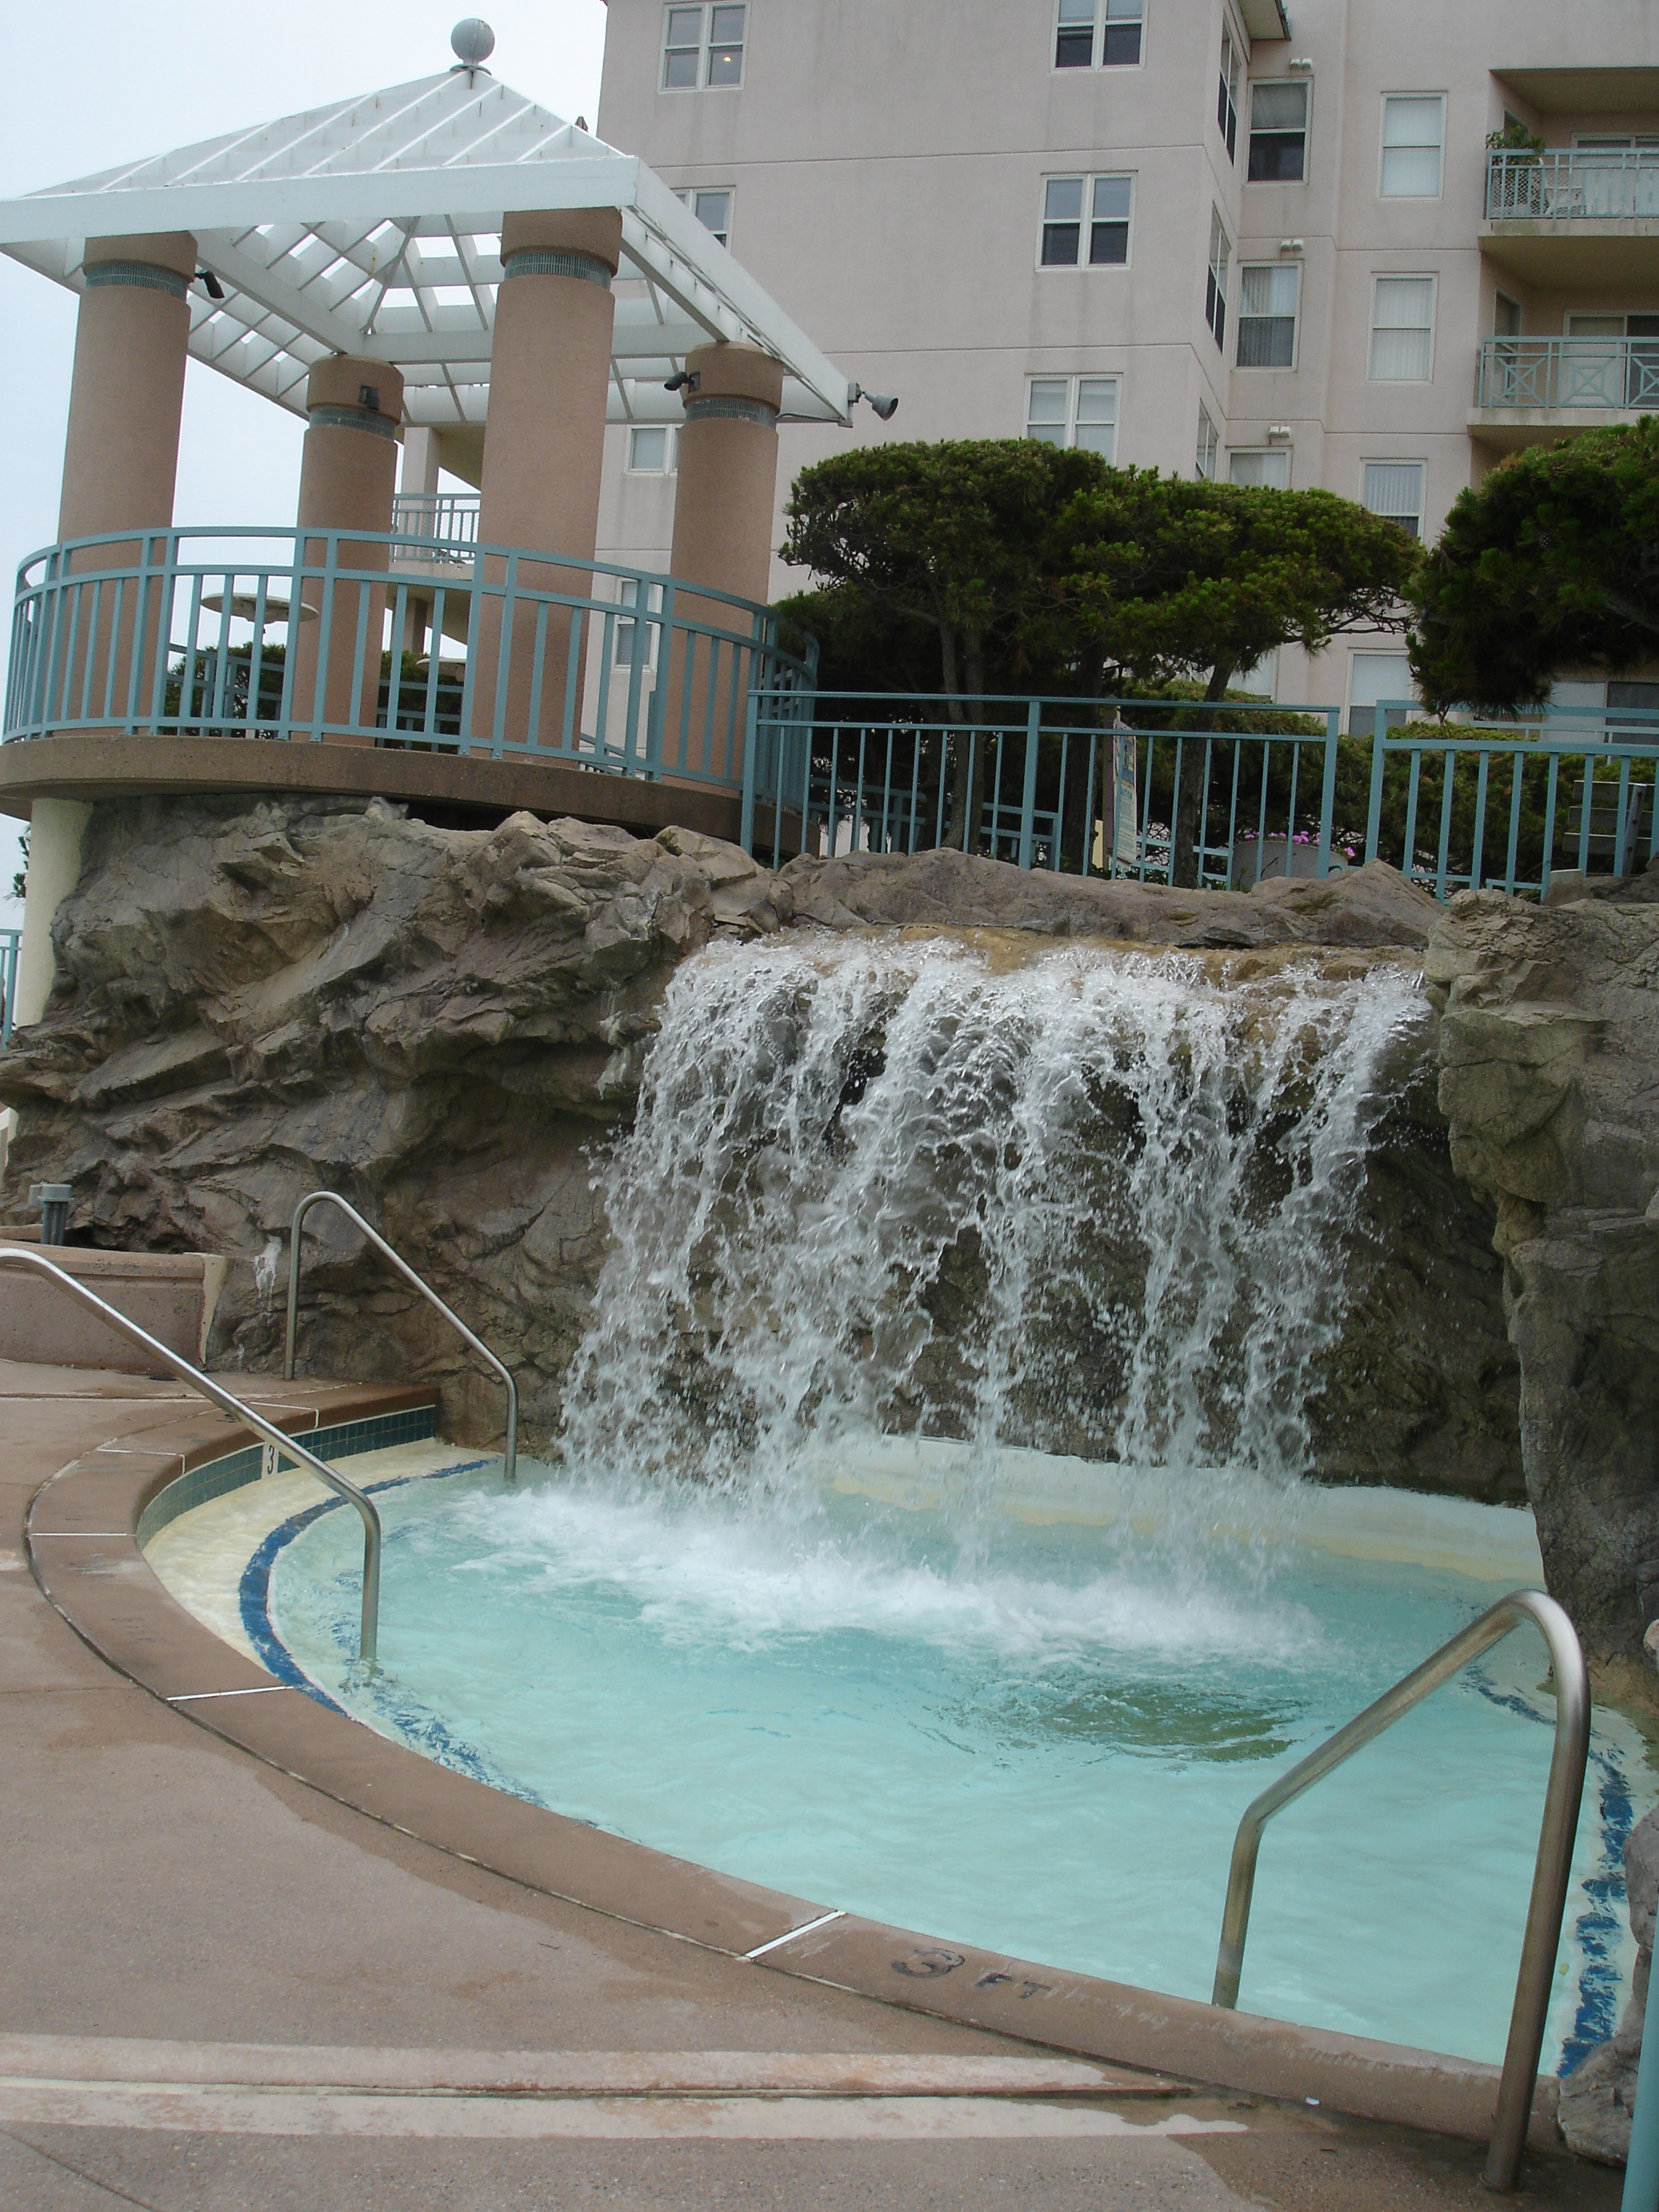 Seapointe Village Wildwood, Main pool waterfall - go in and enjoy!